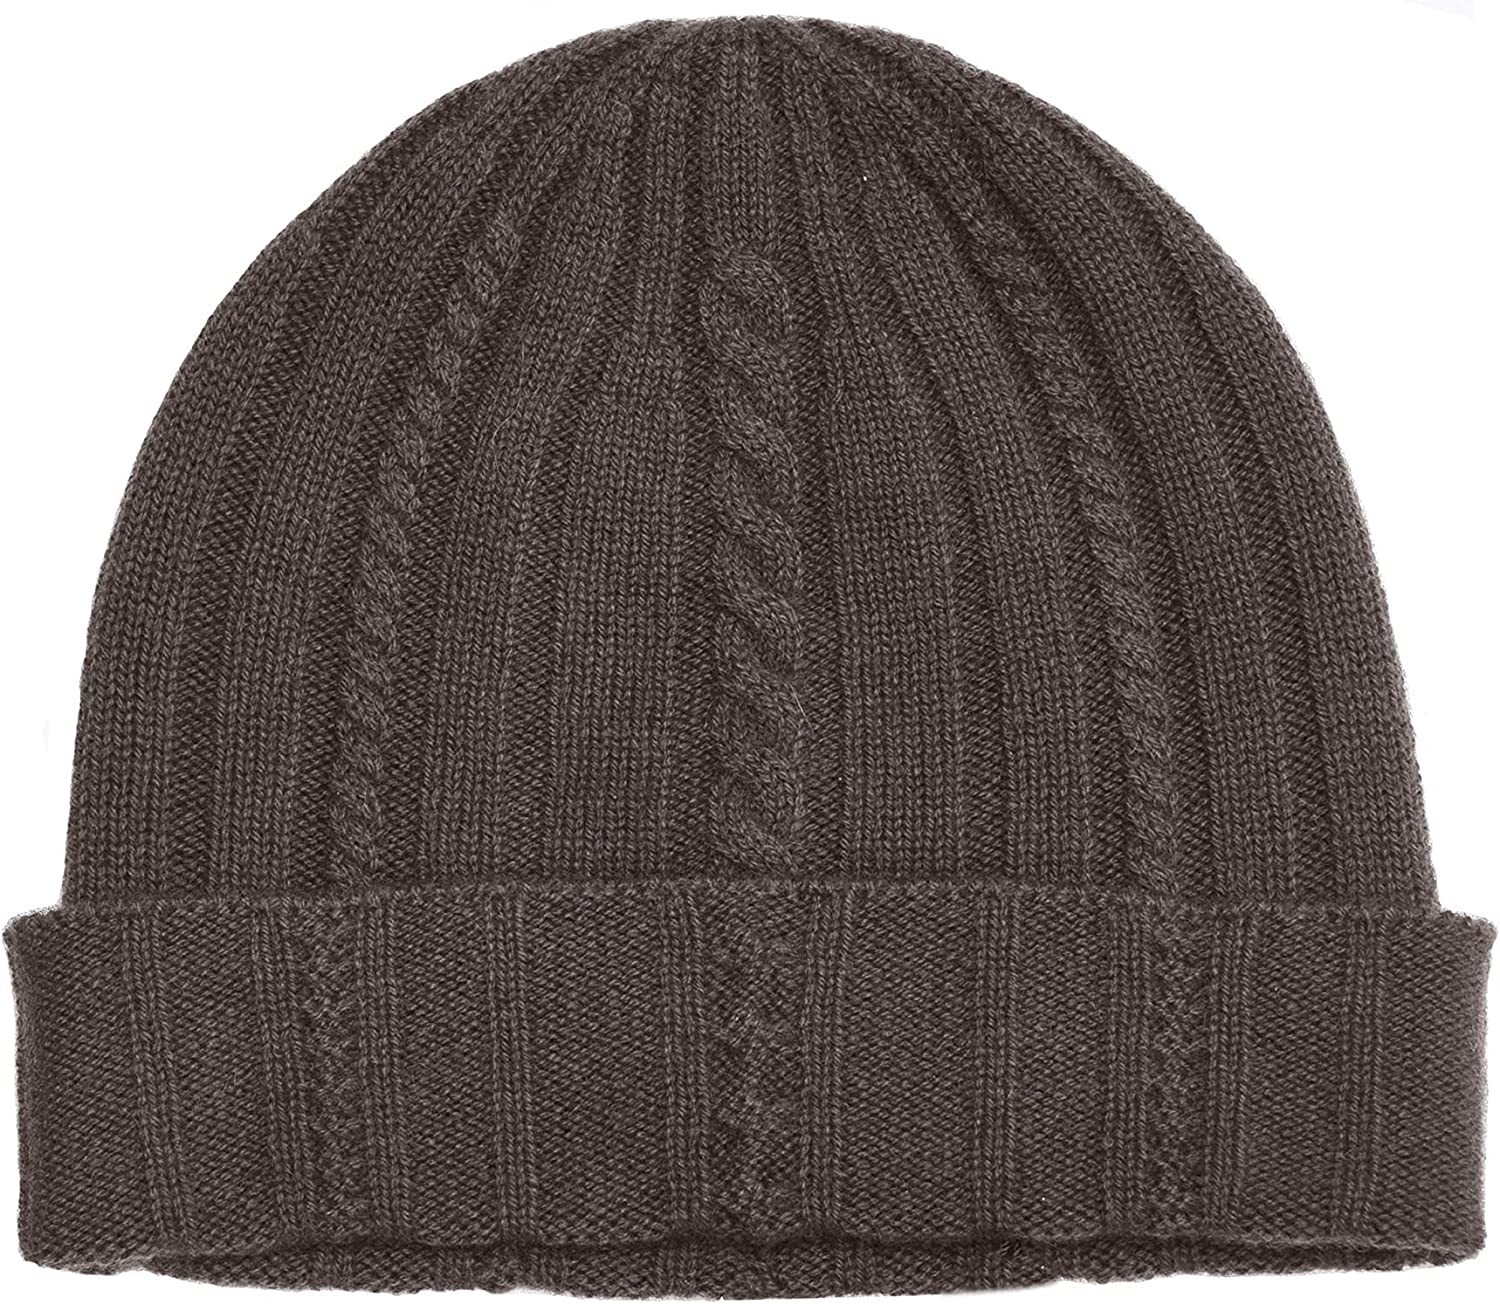 Black ,One Men/'s 100/% Skullies /& Beanies Cashmere Ribbed Hat Cuffed Super Soft